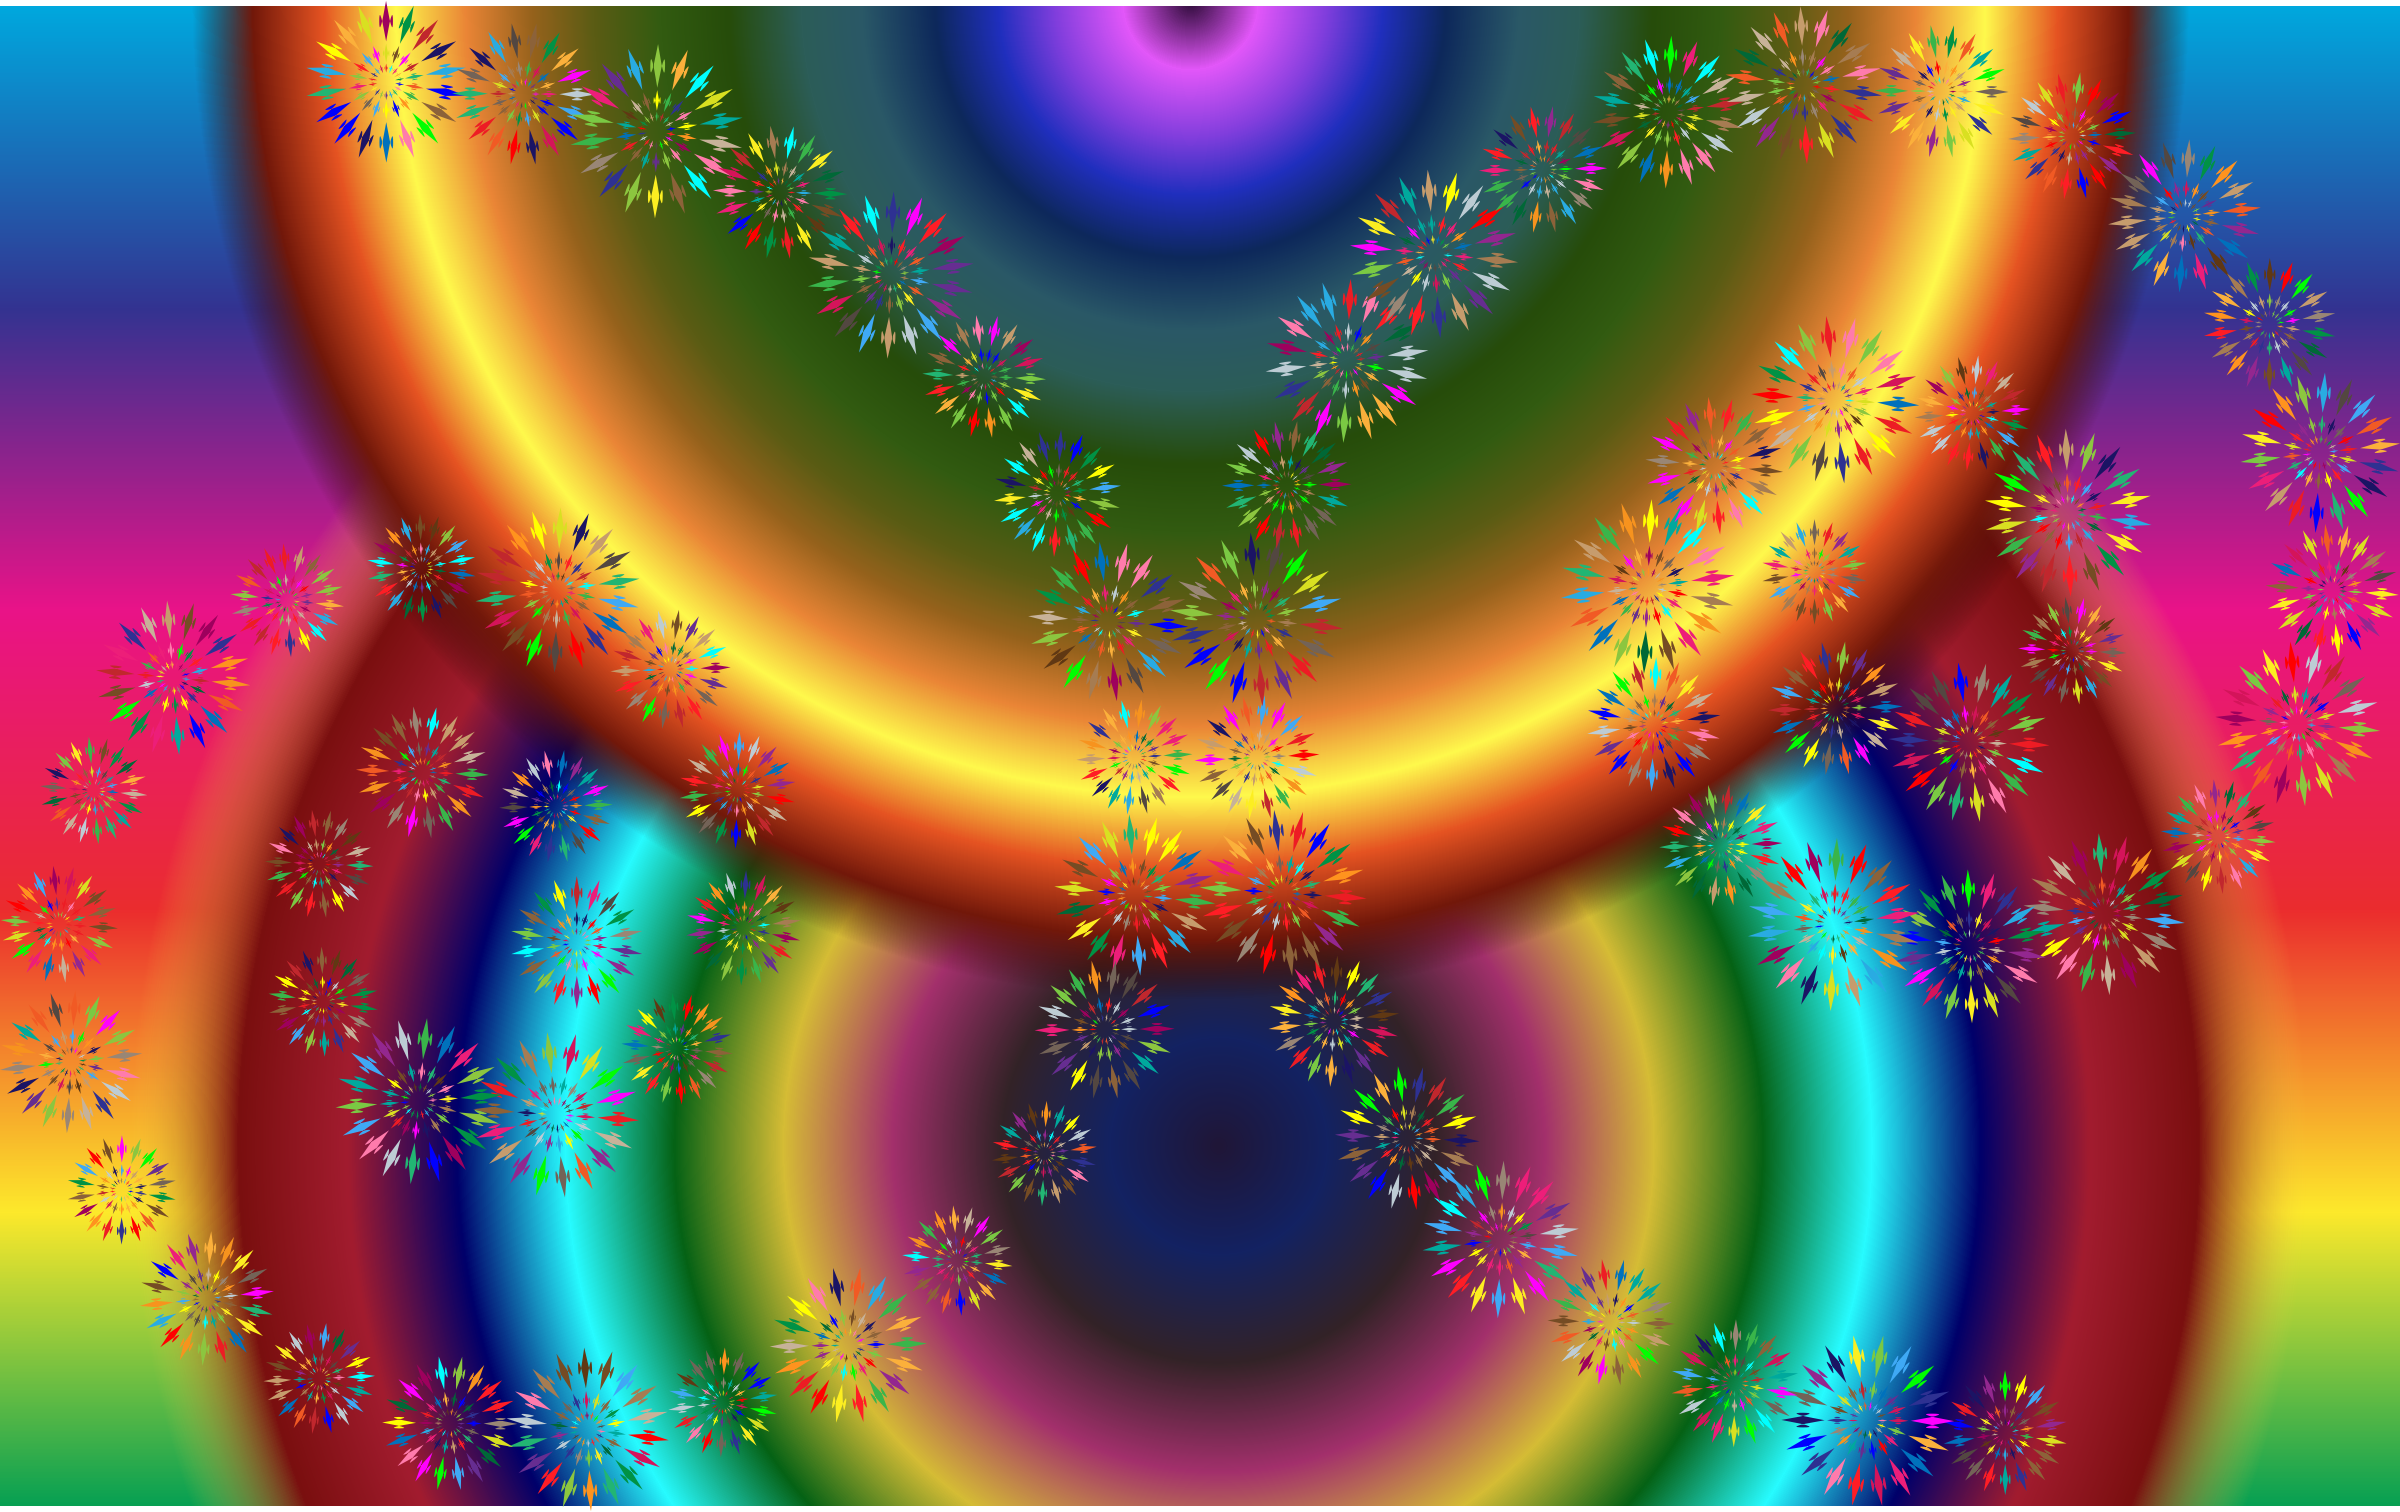 Geometric Spiral Art Variation 2 by GDJ